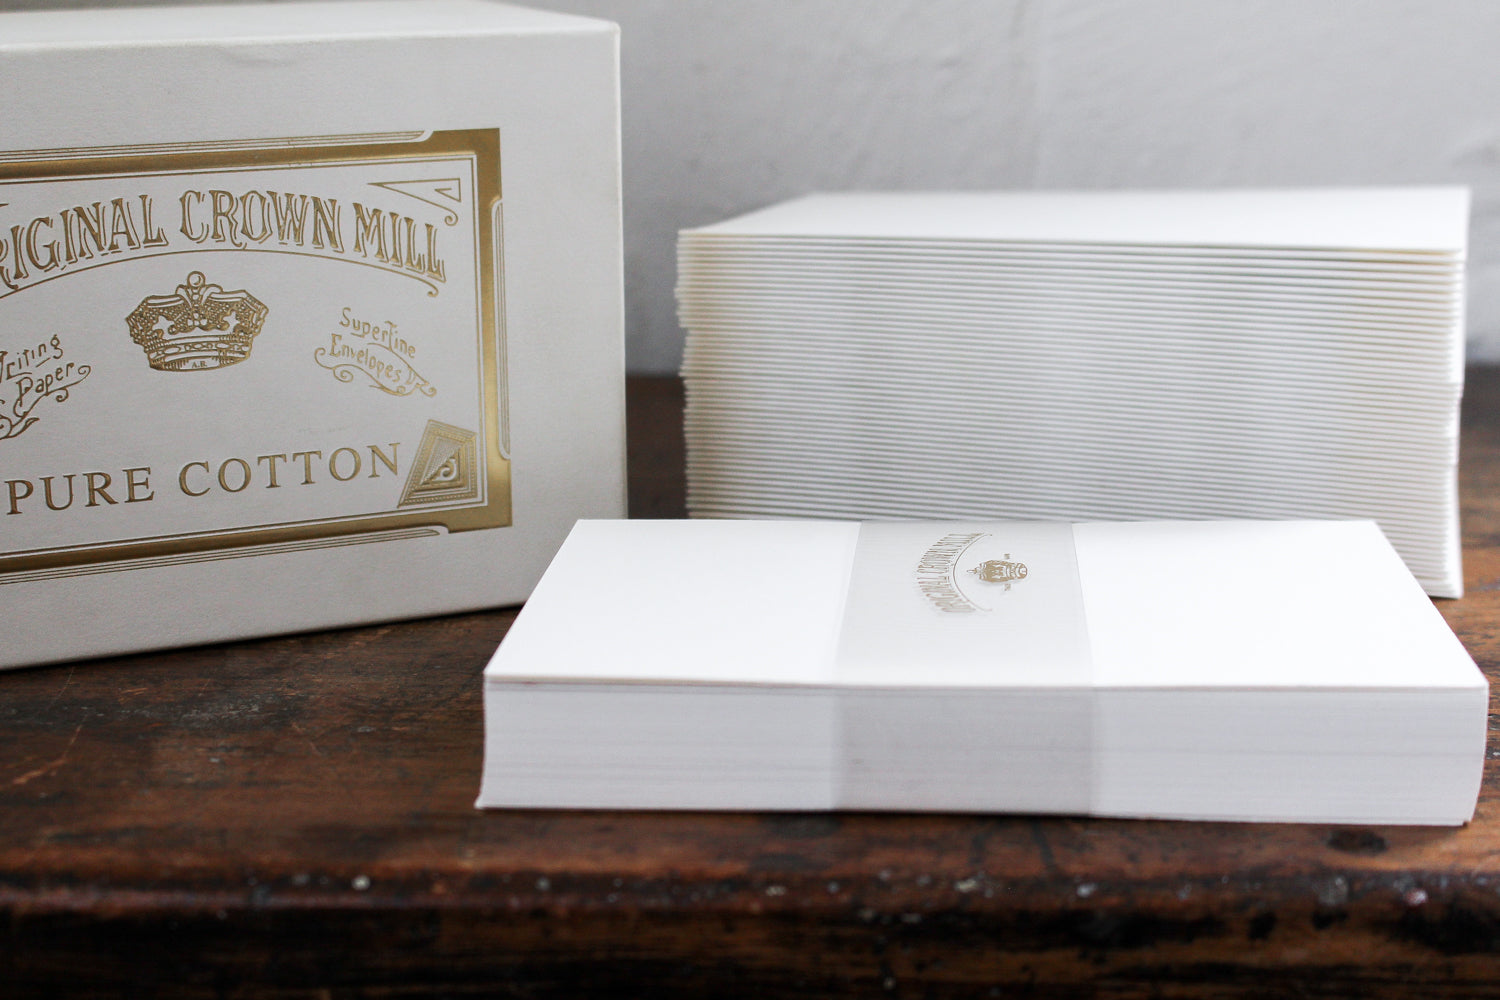 Crown Mill Small Writing Set - Pure Cotton